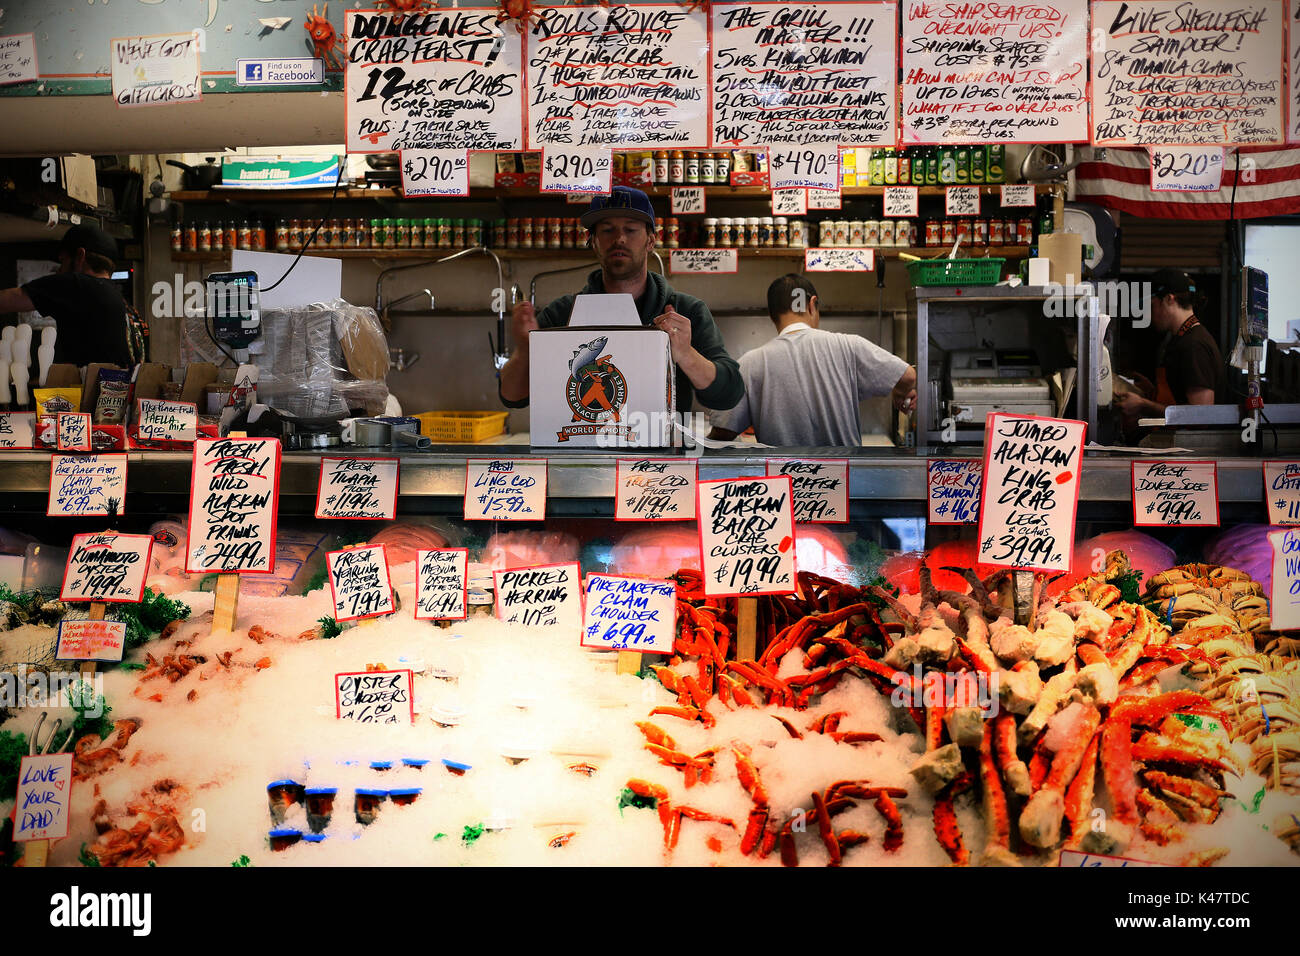 SEATTLE, WA, USA - JUNE 2016 - Unidentified seller at the Pike Fish Market. Prices and merchandise at the front. - Stock Image